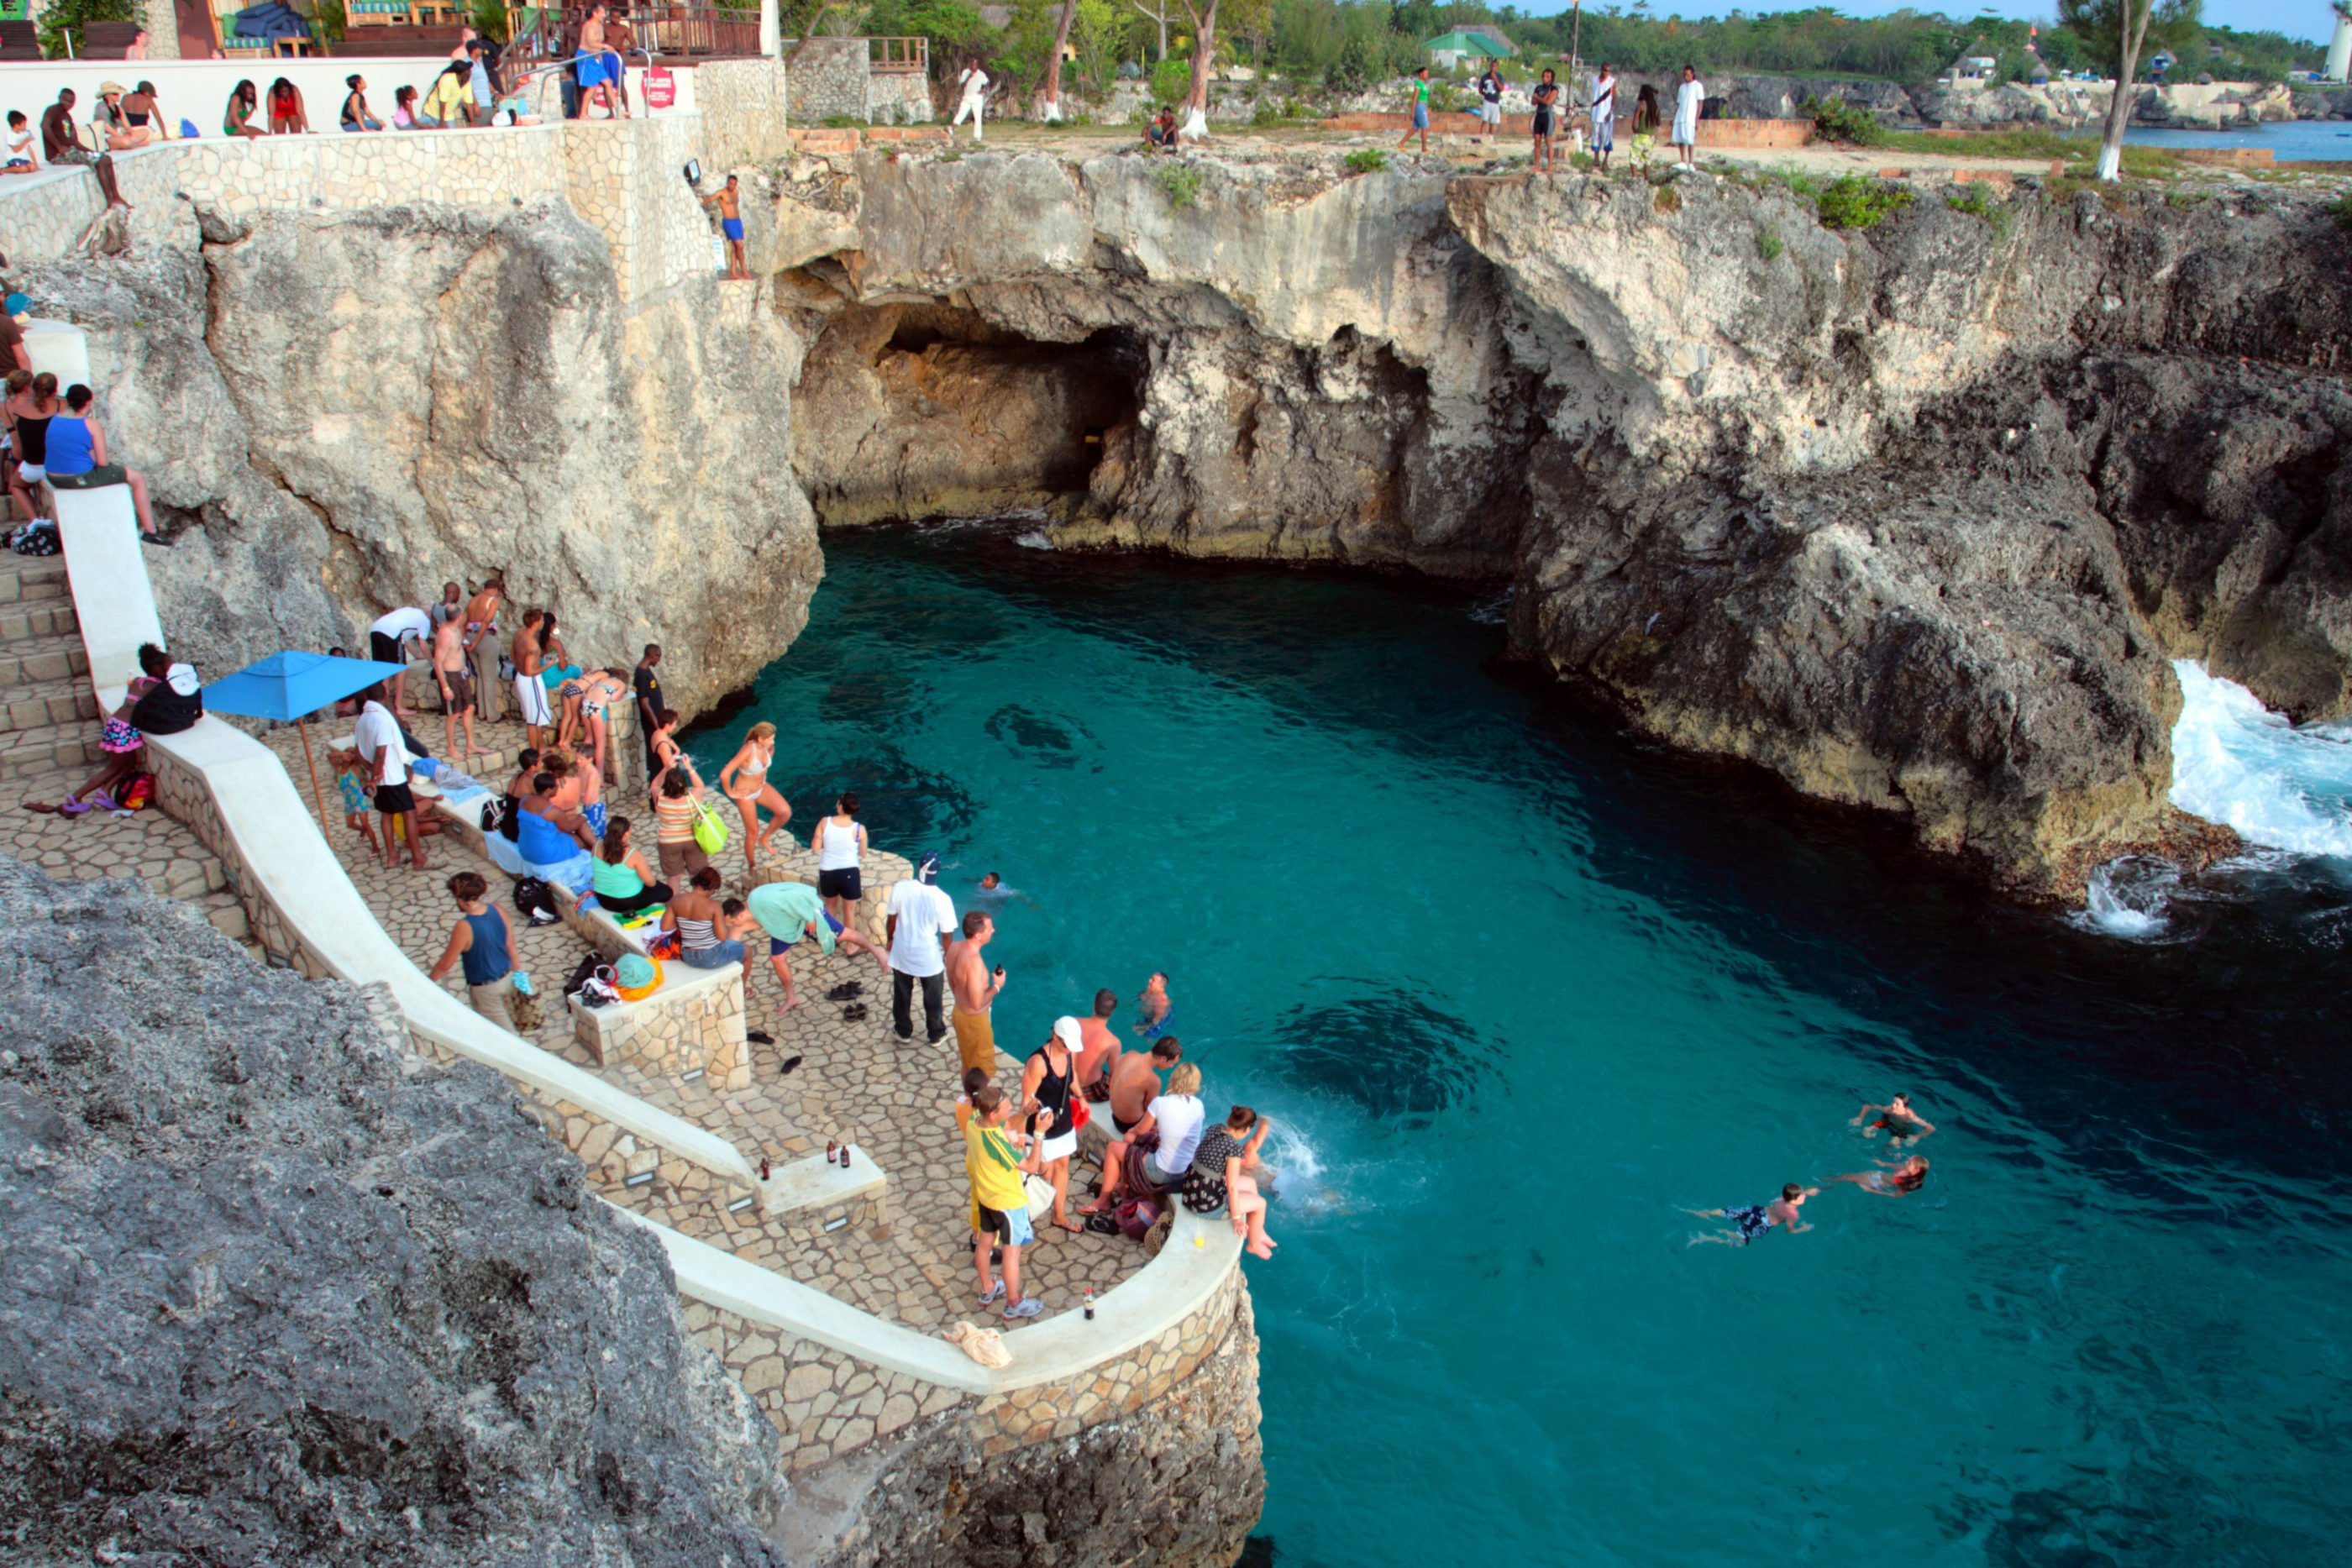 Aerial view of people watching others dive off of the famous cliff into the blue water at Rick's Cafe.